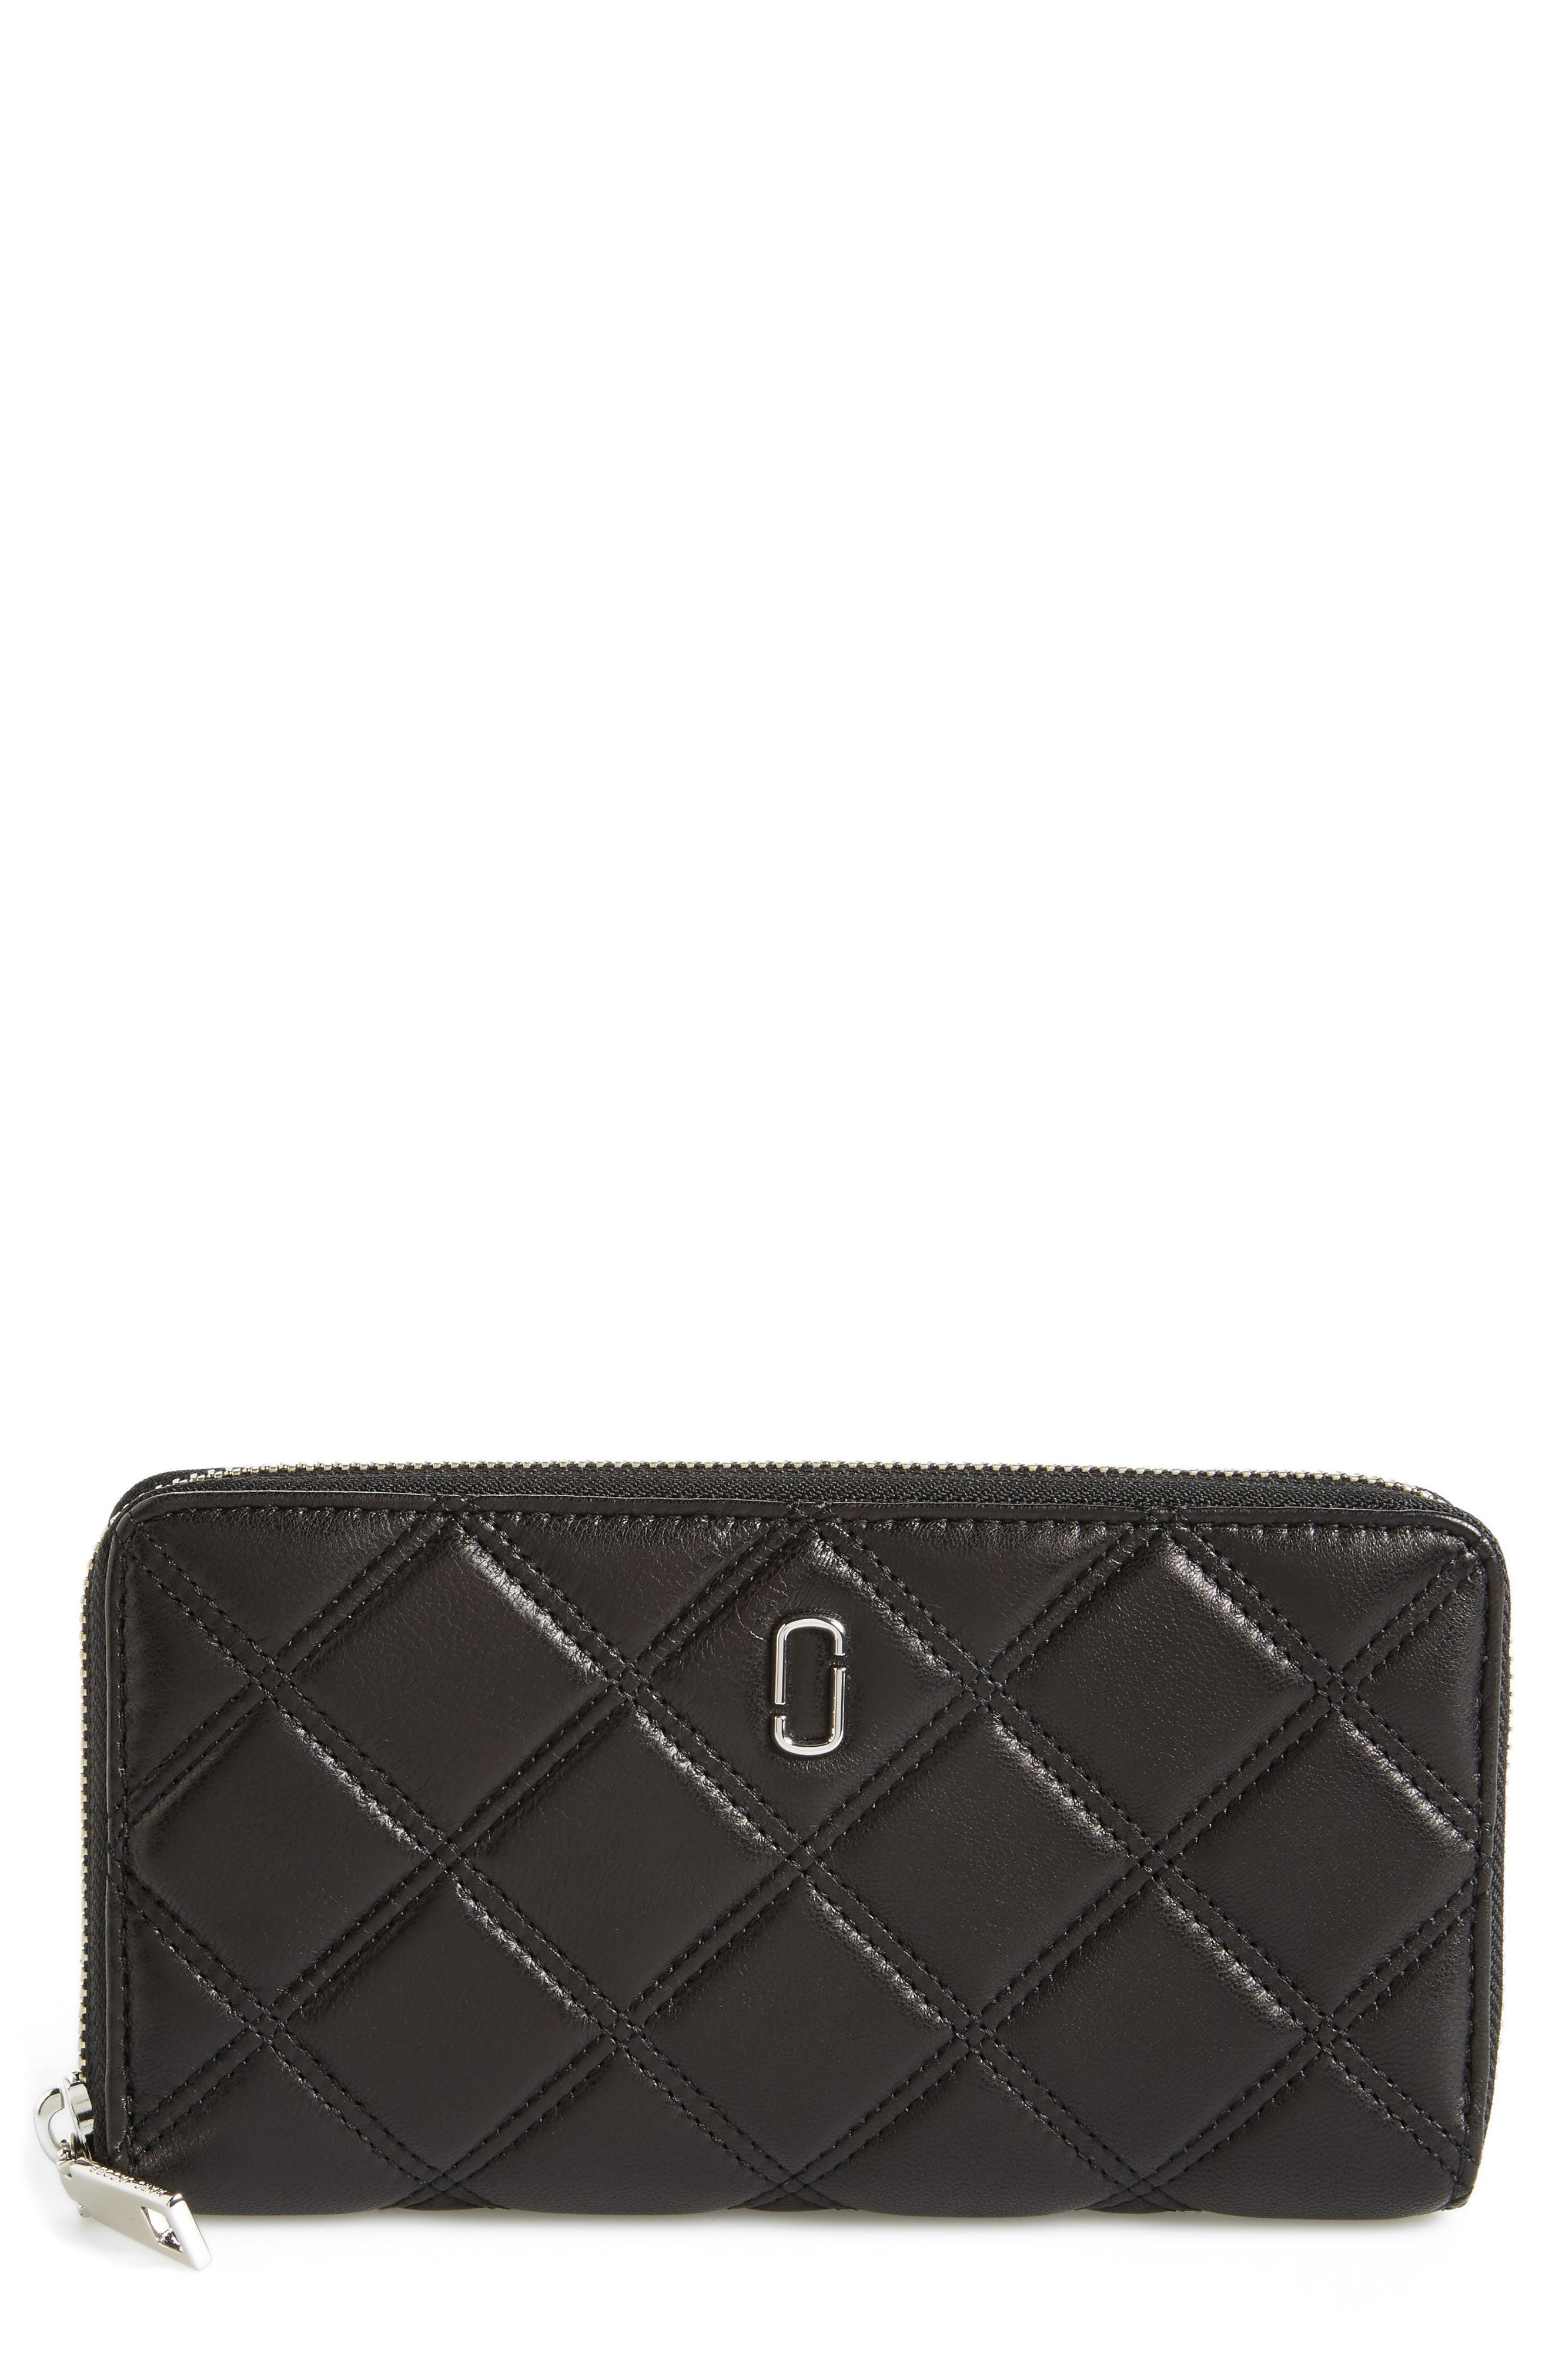 Quilted Leather Zip Wallet,                             Main thumbnail 1, color,                             Black